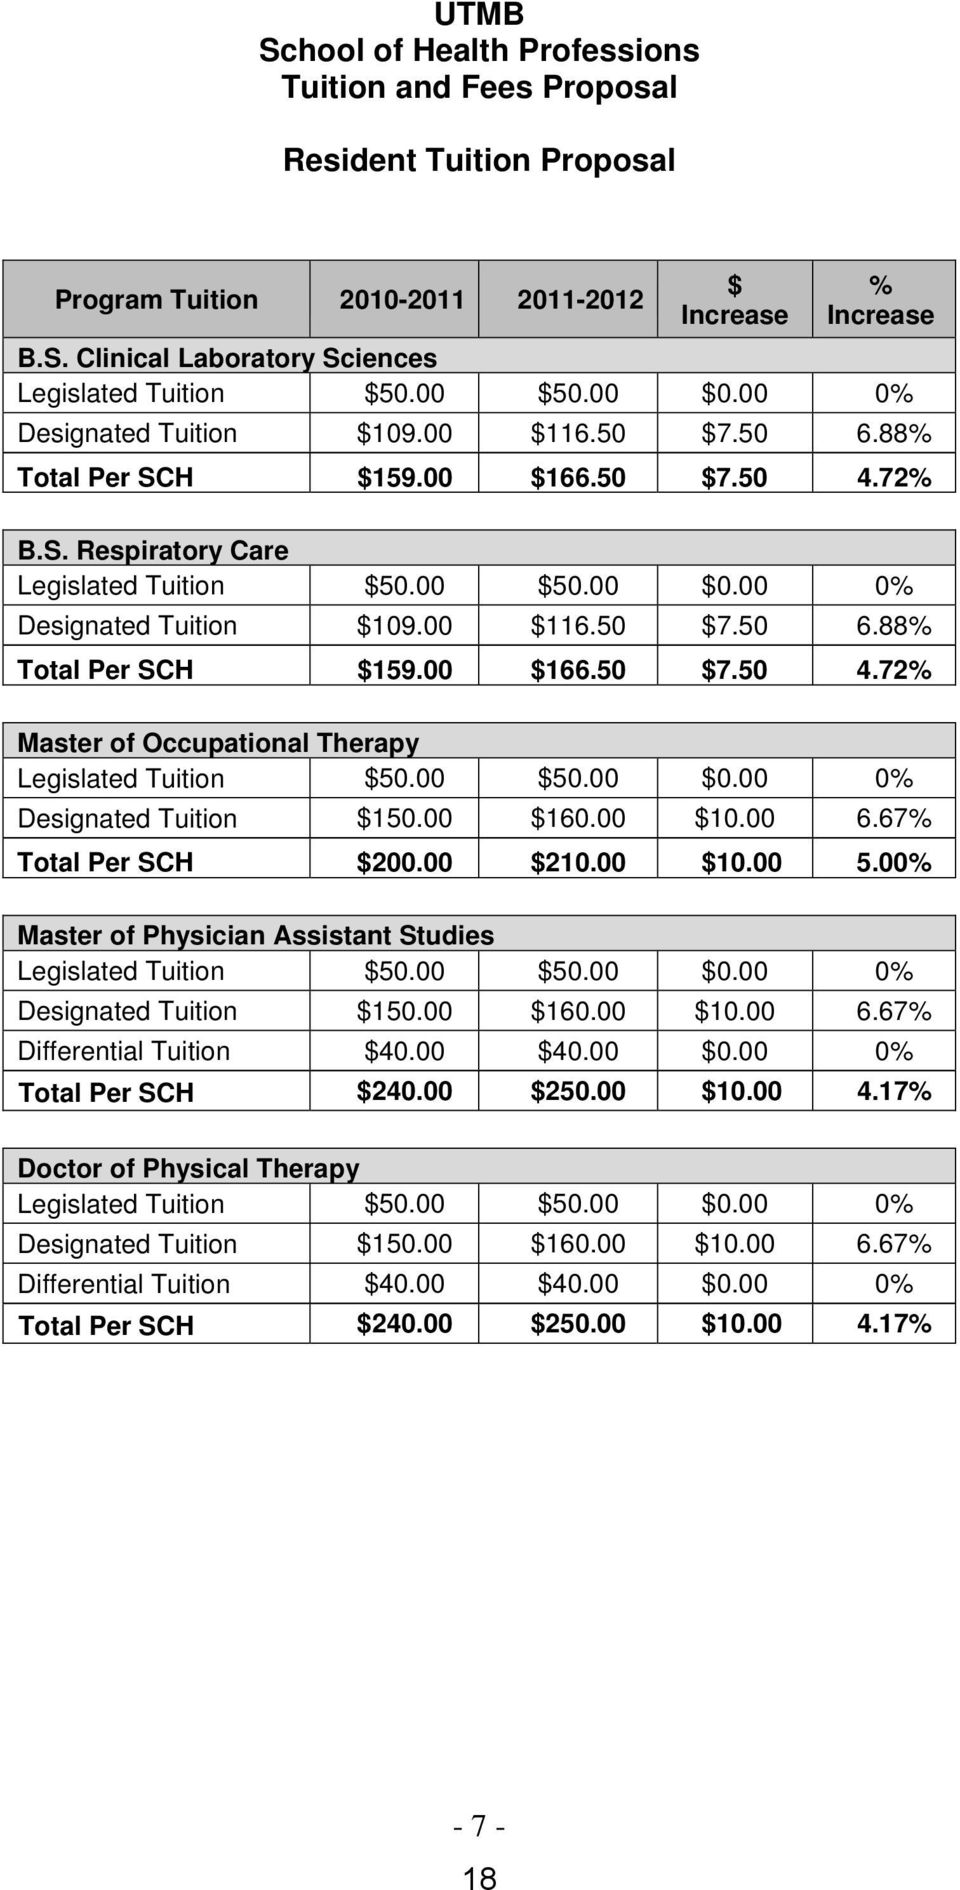 00 $50.00 $0.00 0% Designated Tuition $150.00 $160.00 $10.00 6.67% Total Per SCH $200.00 $210.00 $10.00 5.00% Master of Physician Assistant Studies Legislated Tuition $50.00 $50.00 $0.00 0% Designated Tuition $150.00 $160.00 $10.00 6.67% Differential Tuition $40.